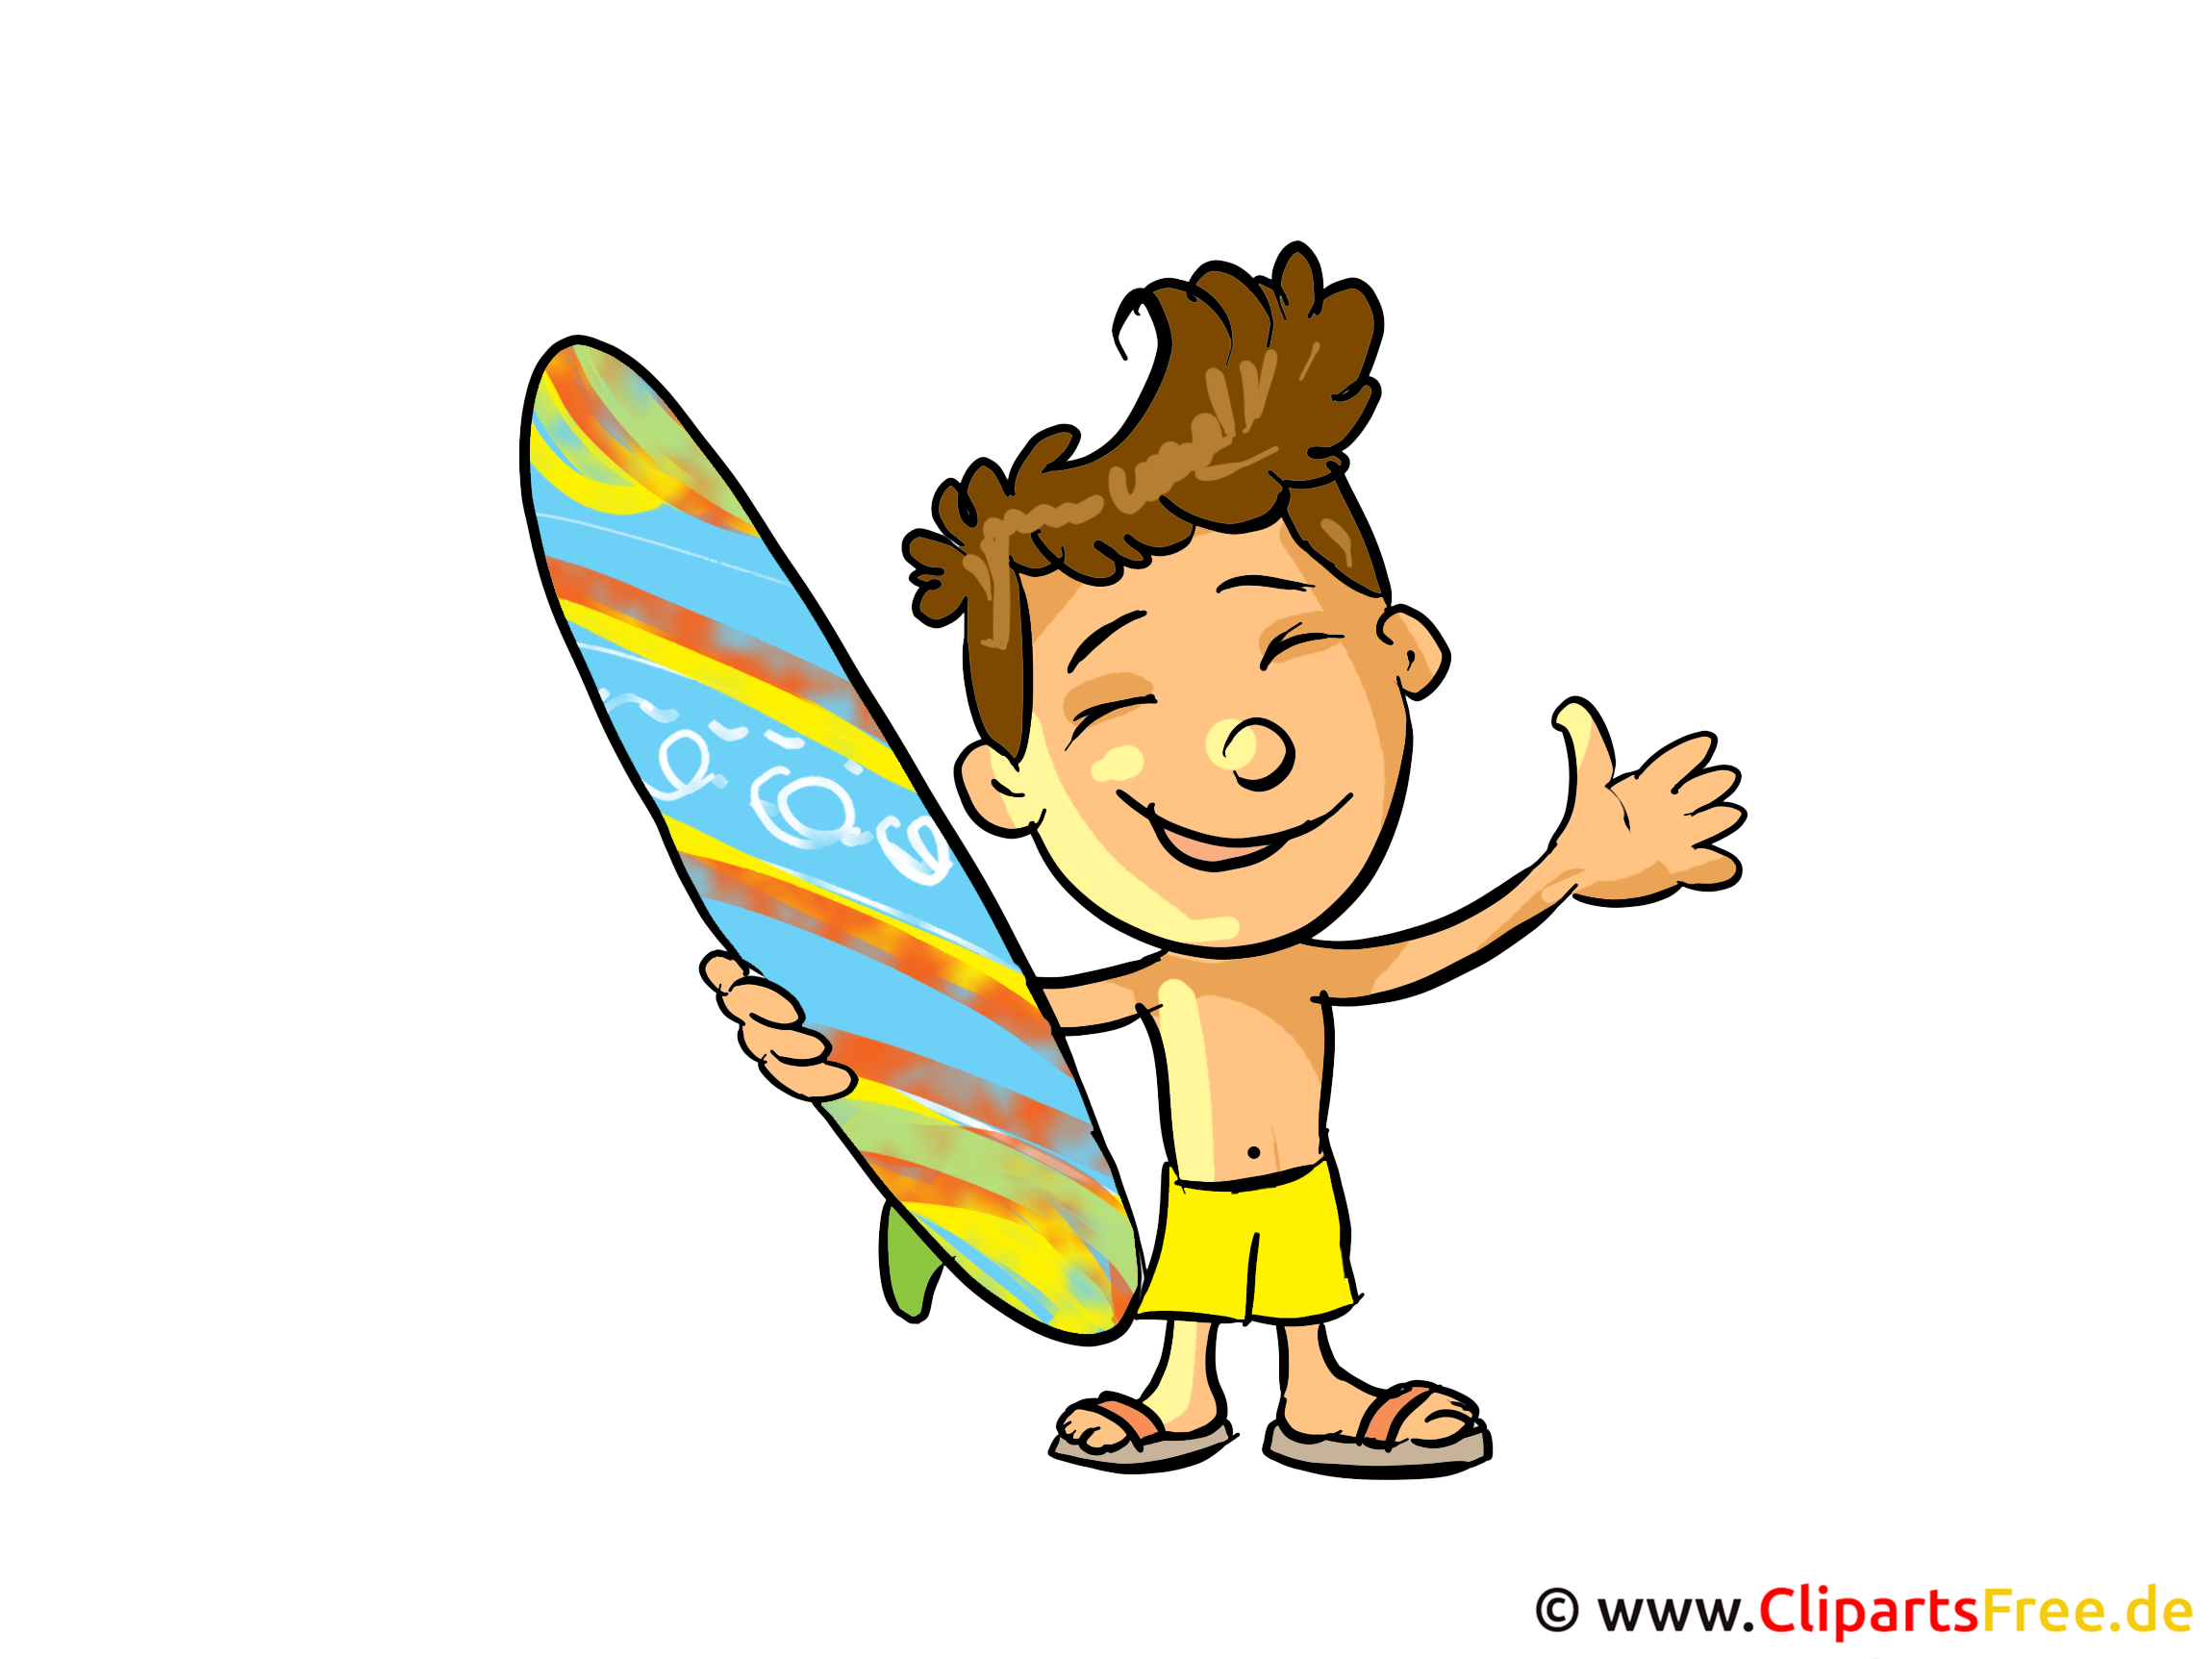 Surfer Clipart, Bild, Cartoon gratis